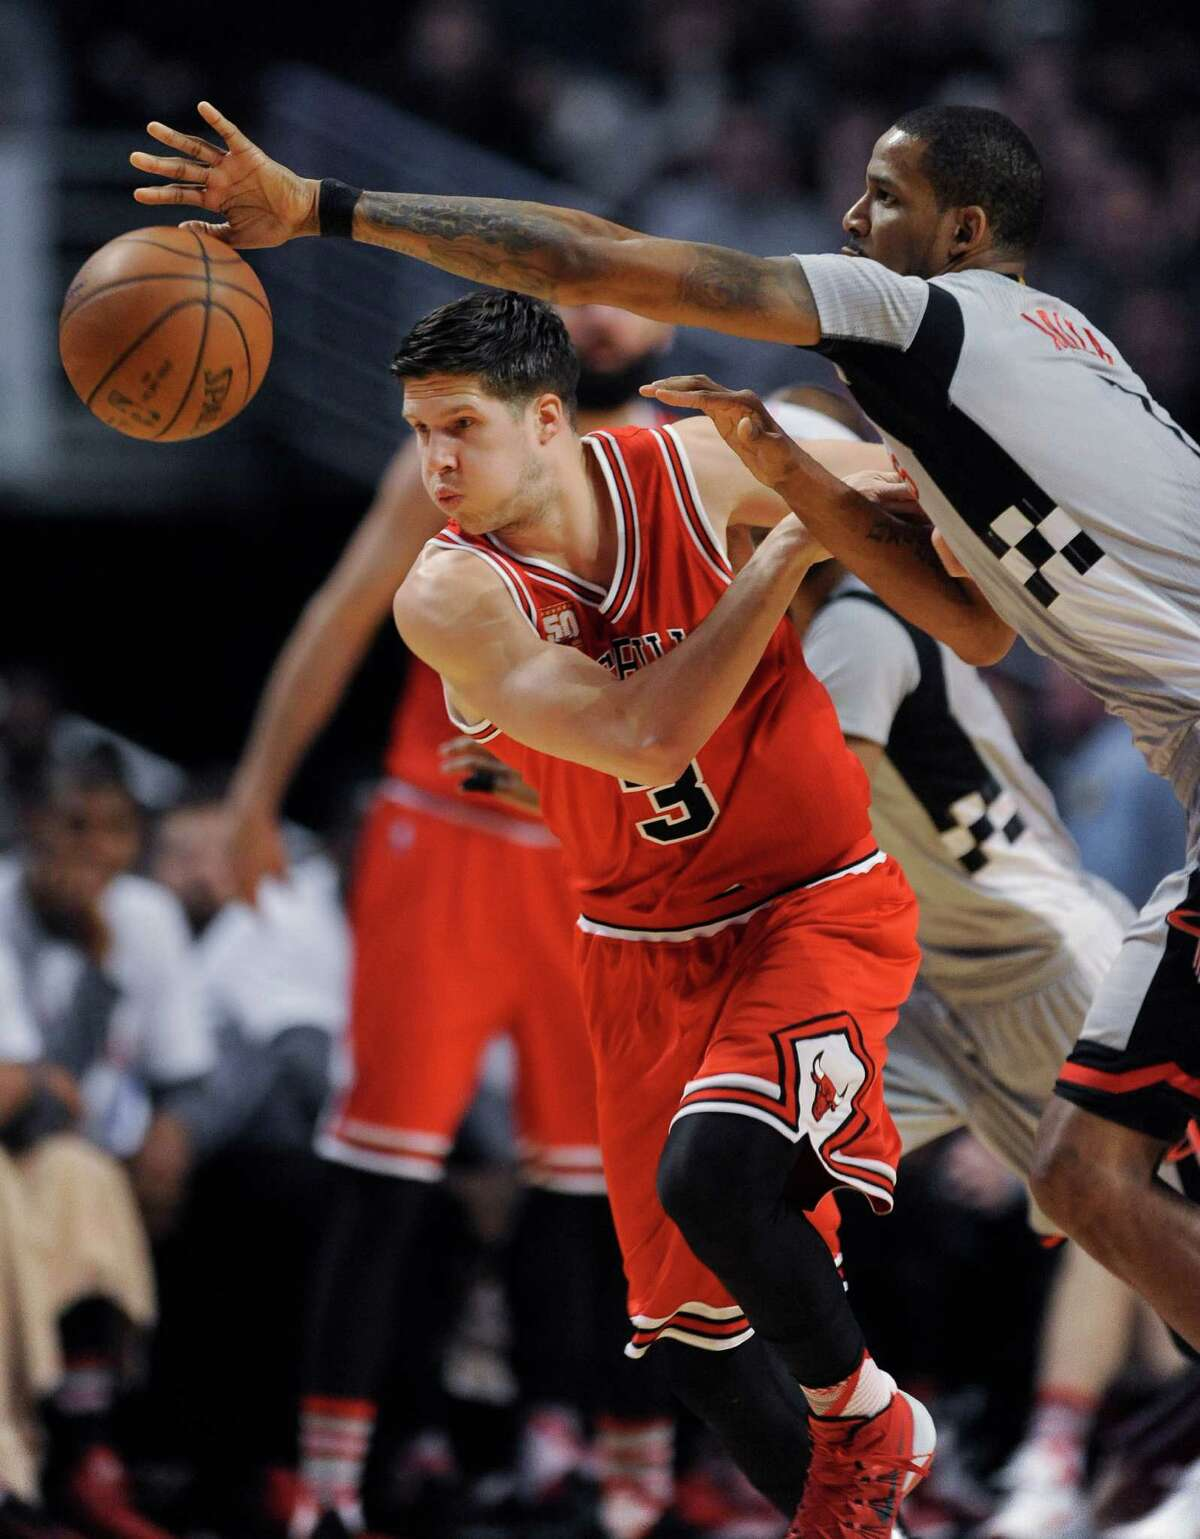 Chicago Bulls' Doug McDermott (3) and Houston Rockets' Trevor Ariza (1) go for a loose ball during the first half of an NBA basketball game Saturday, March 5, 2016, in Chicago.